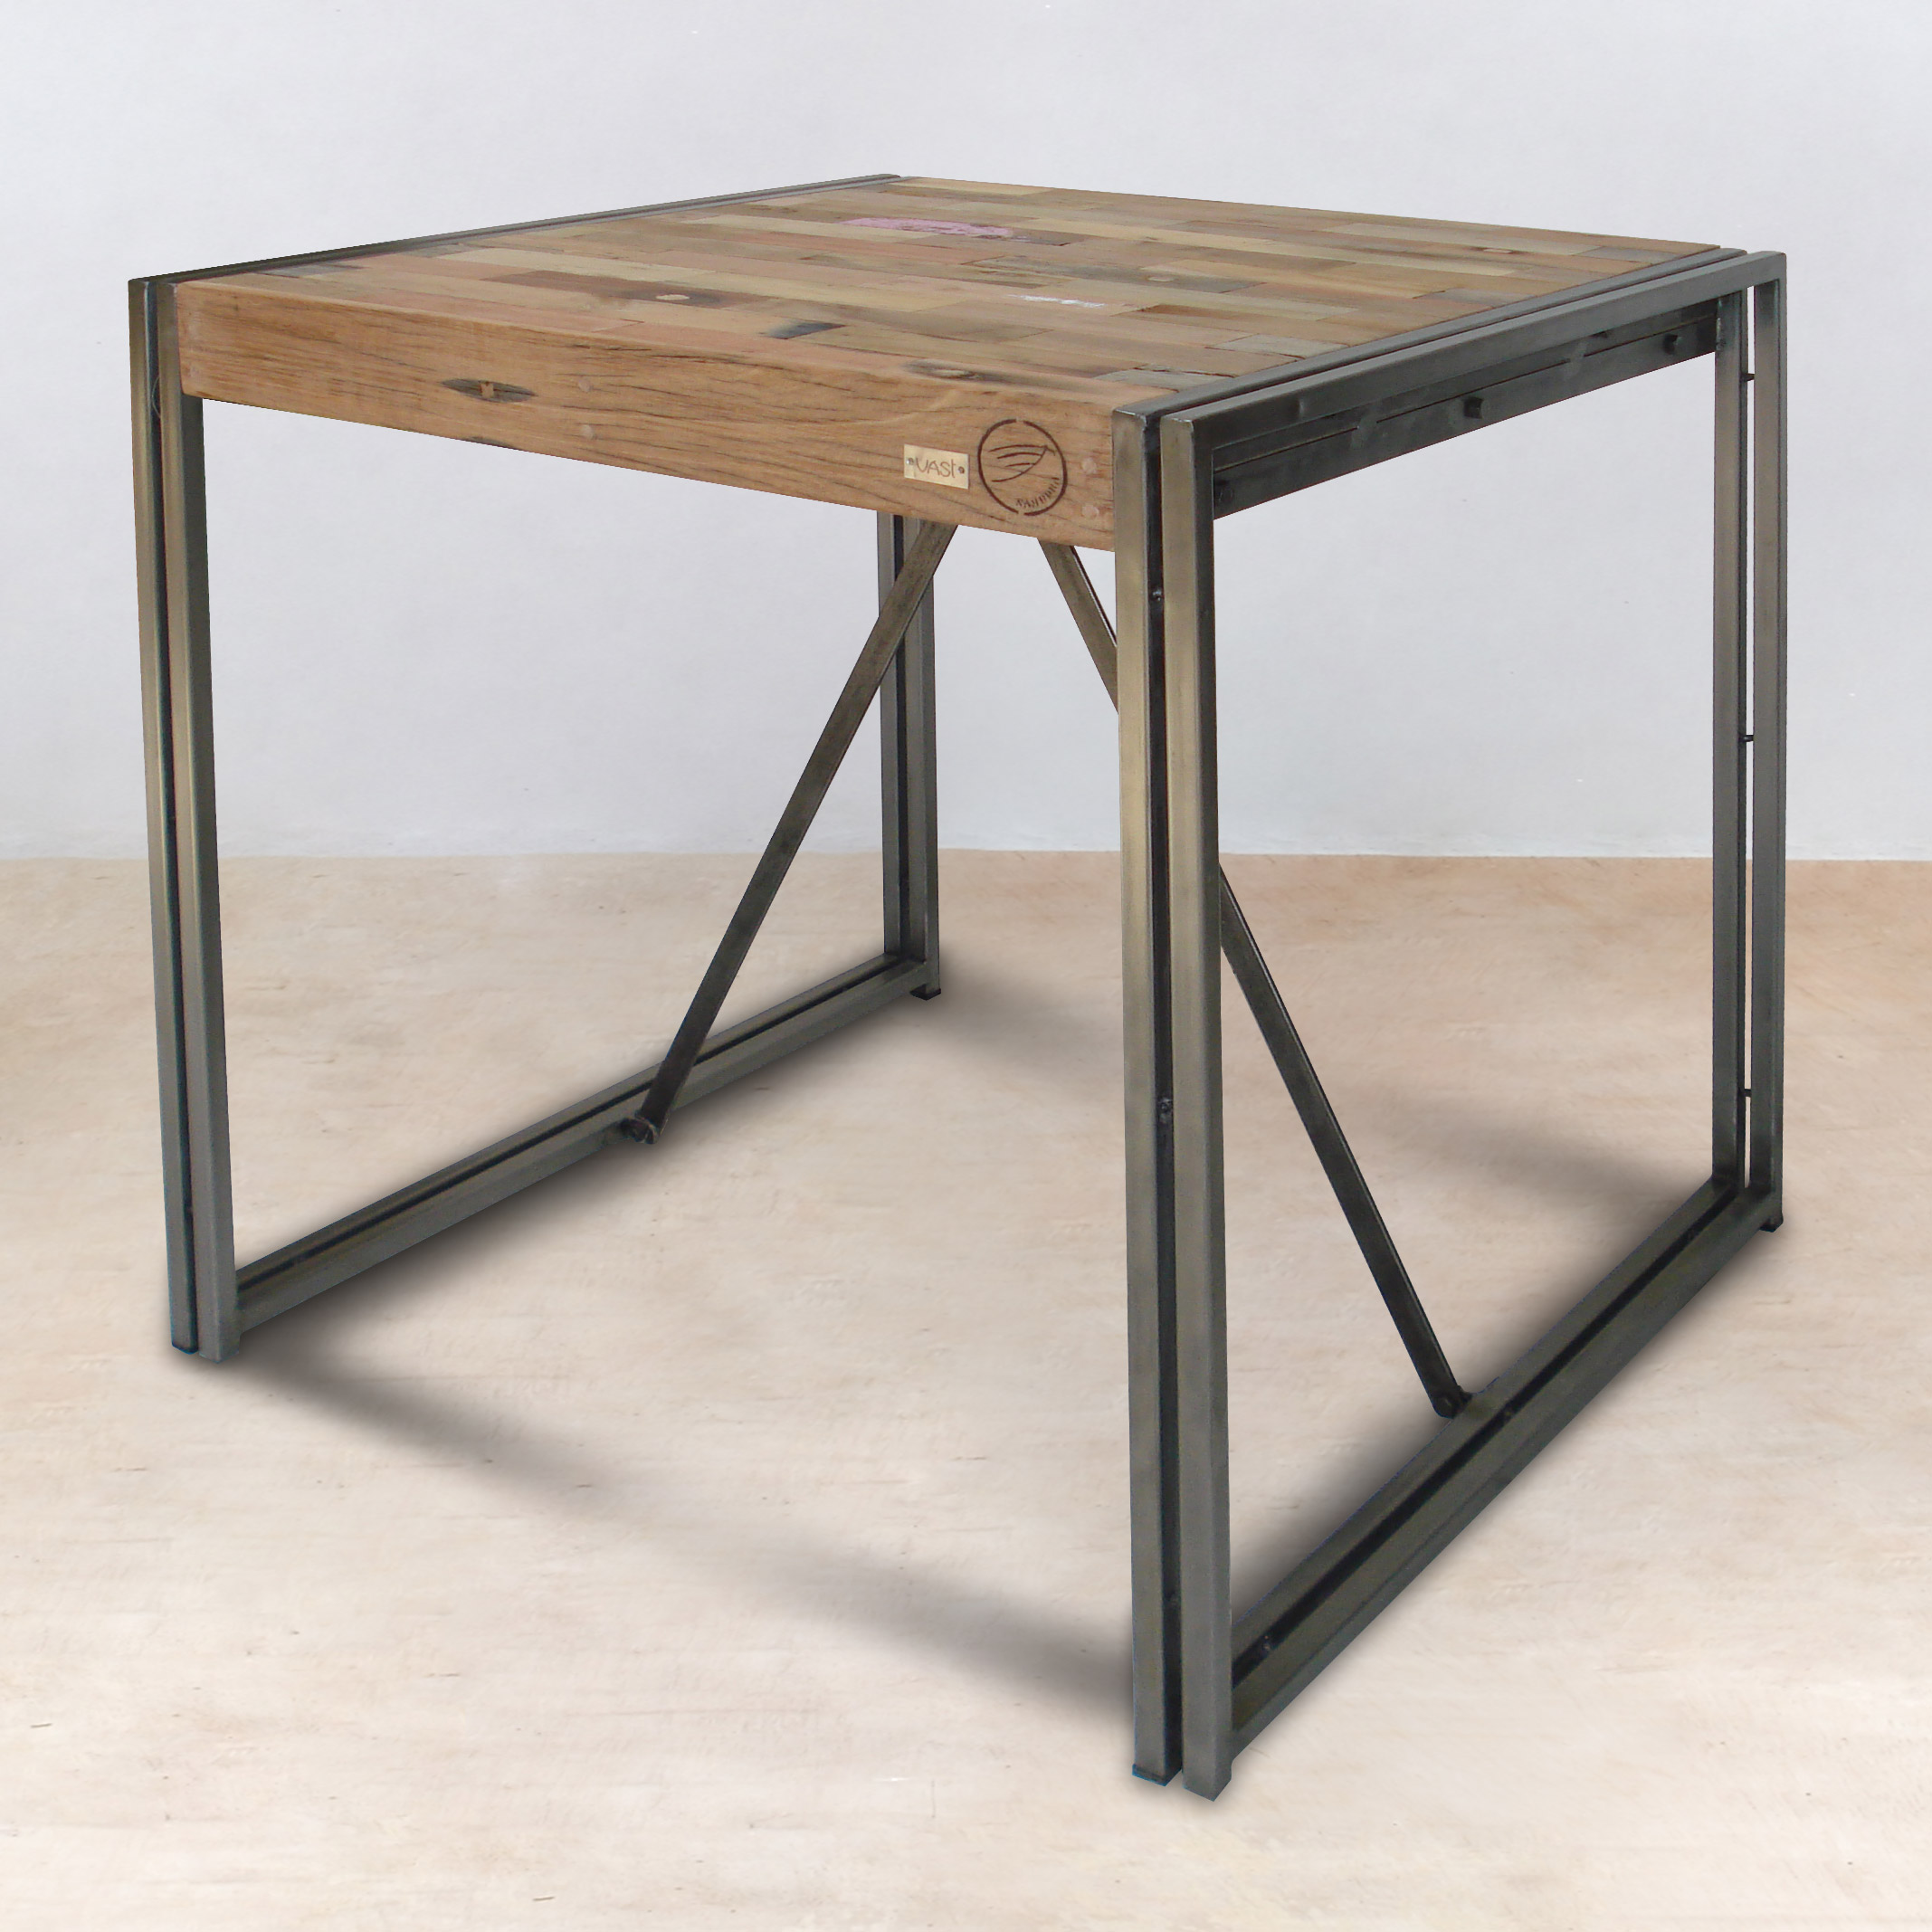 Table mange debout 100cm en bois recycl s industryal - Table a manger carree ...